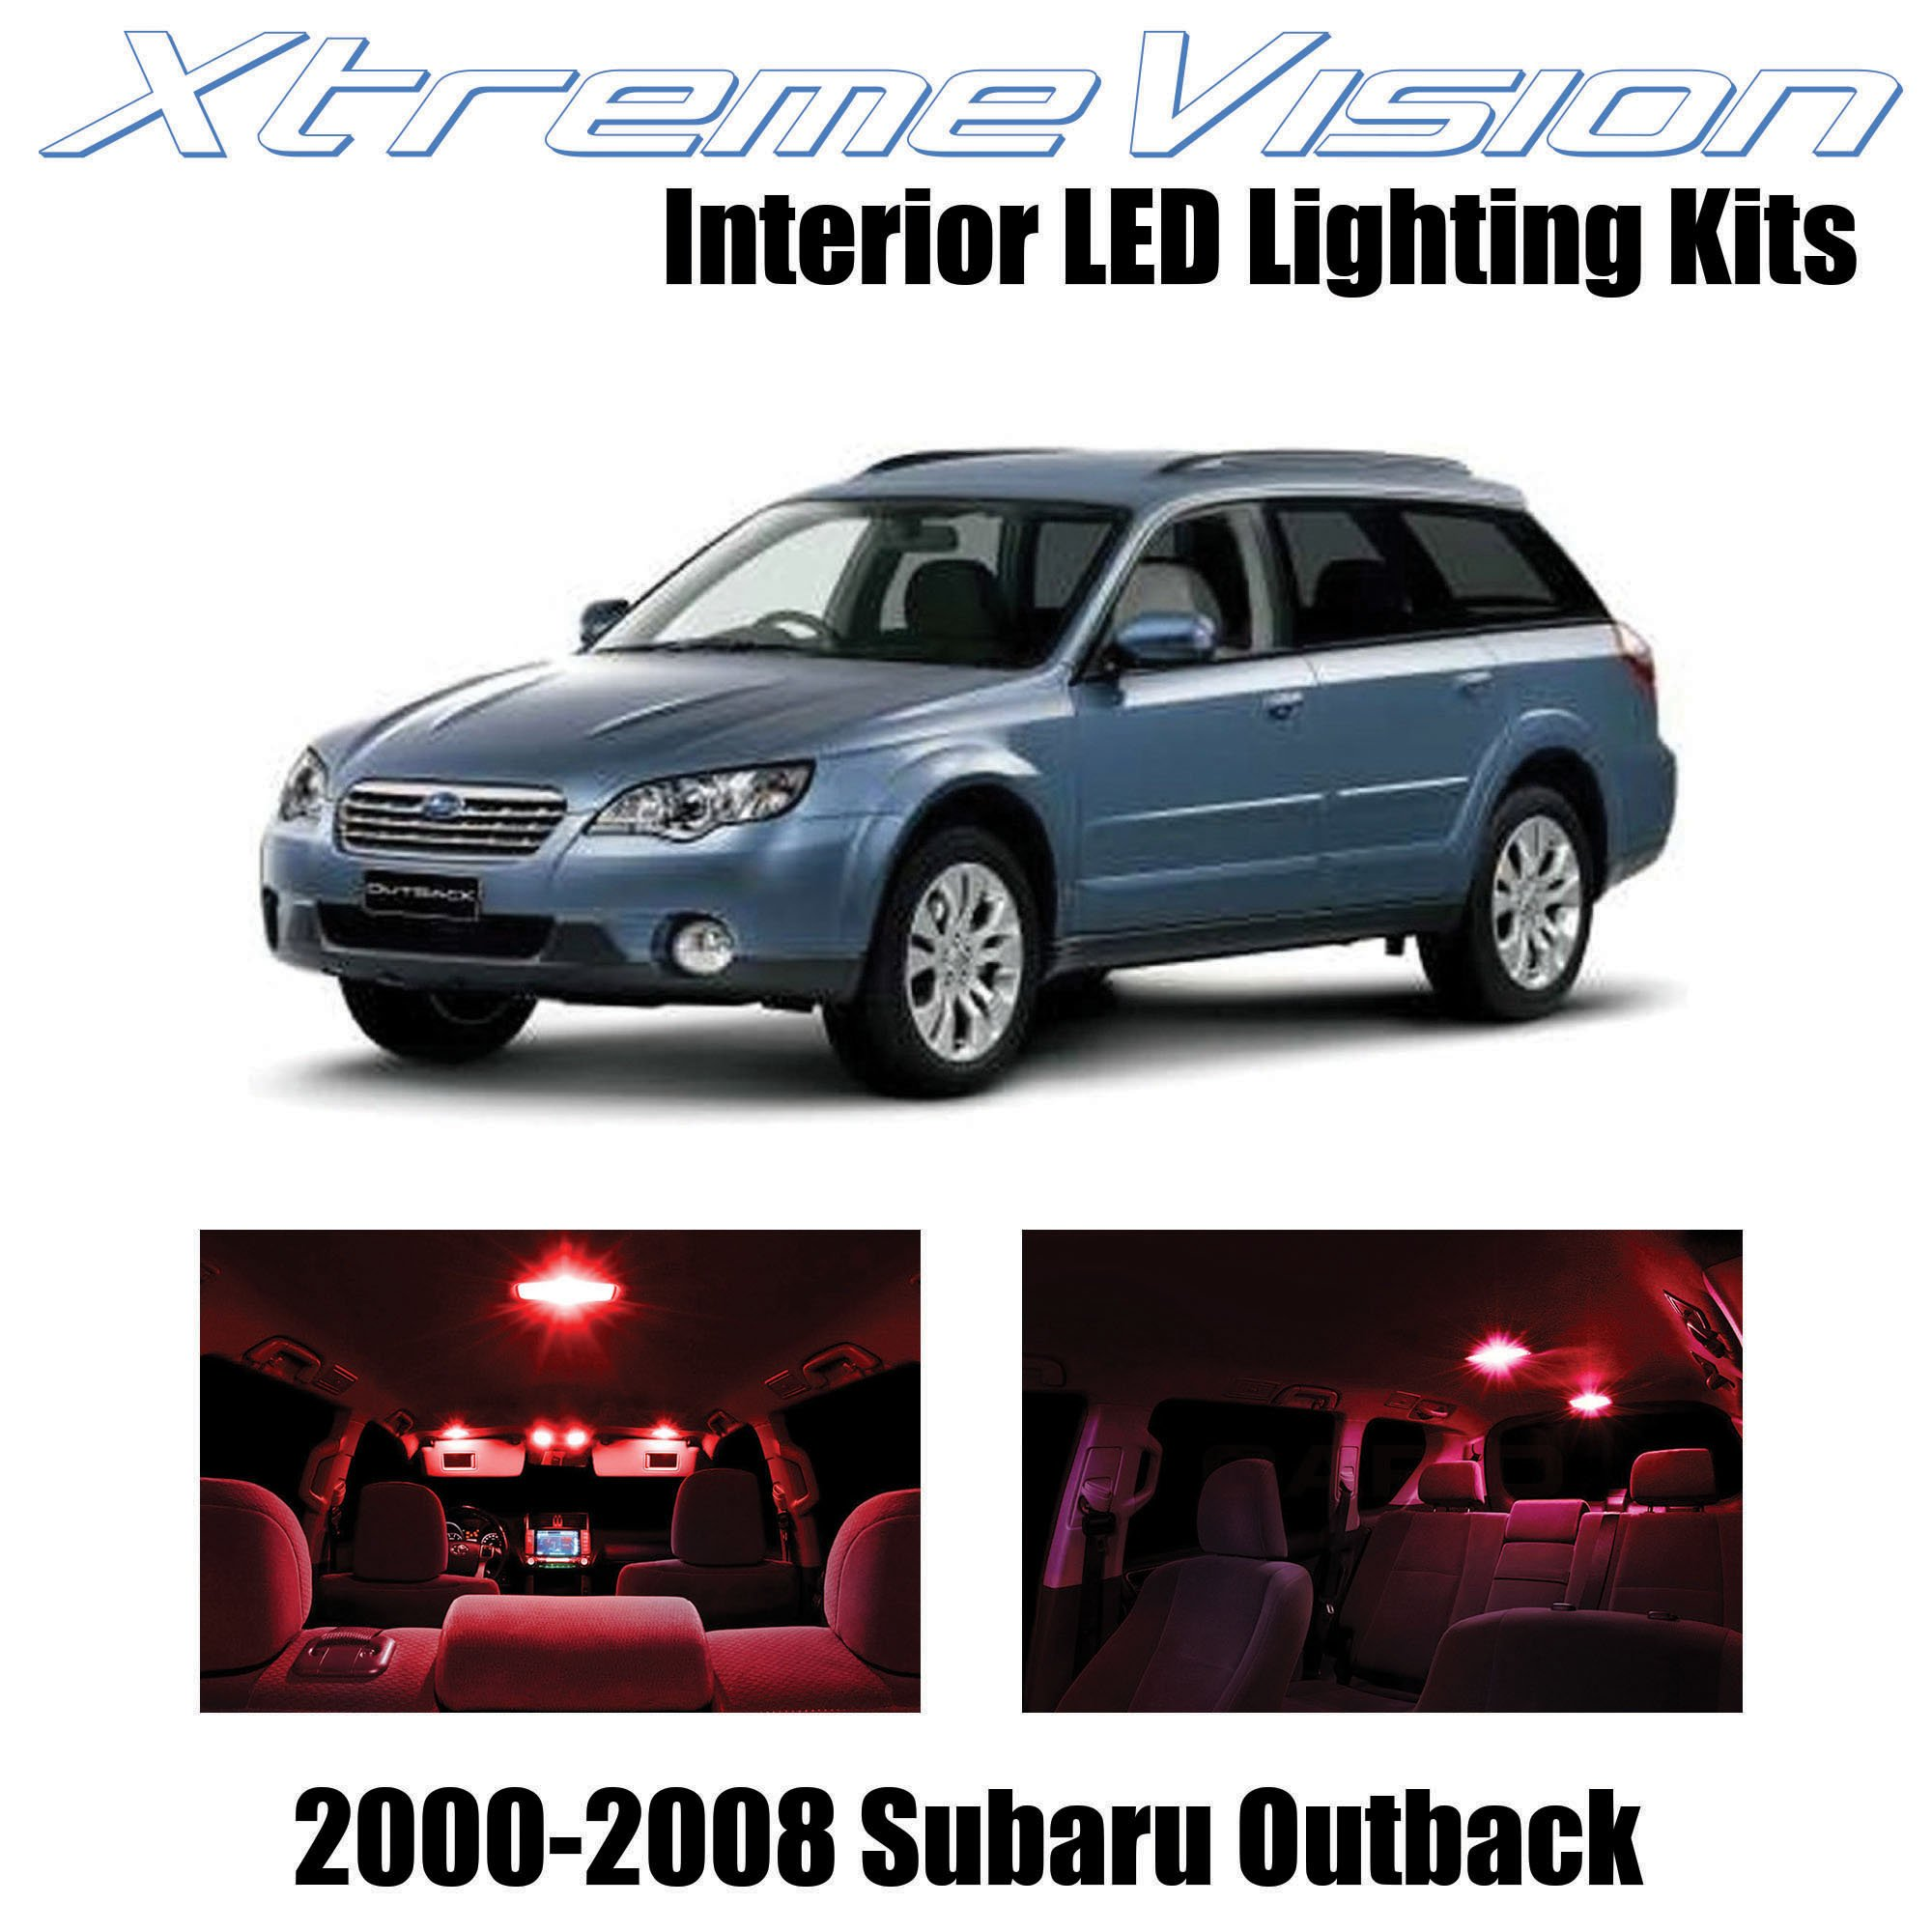 XtremeVision Interior LED for Subaru Outback 2000-2008 (10 Pieces) Red Interior LED Kit + Installation Tool